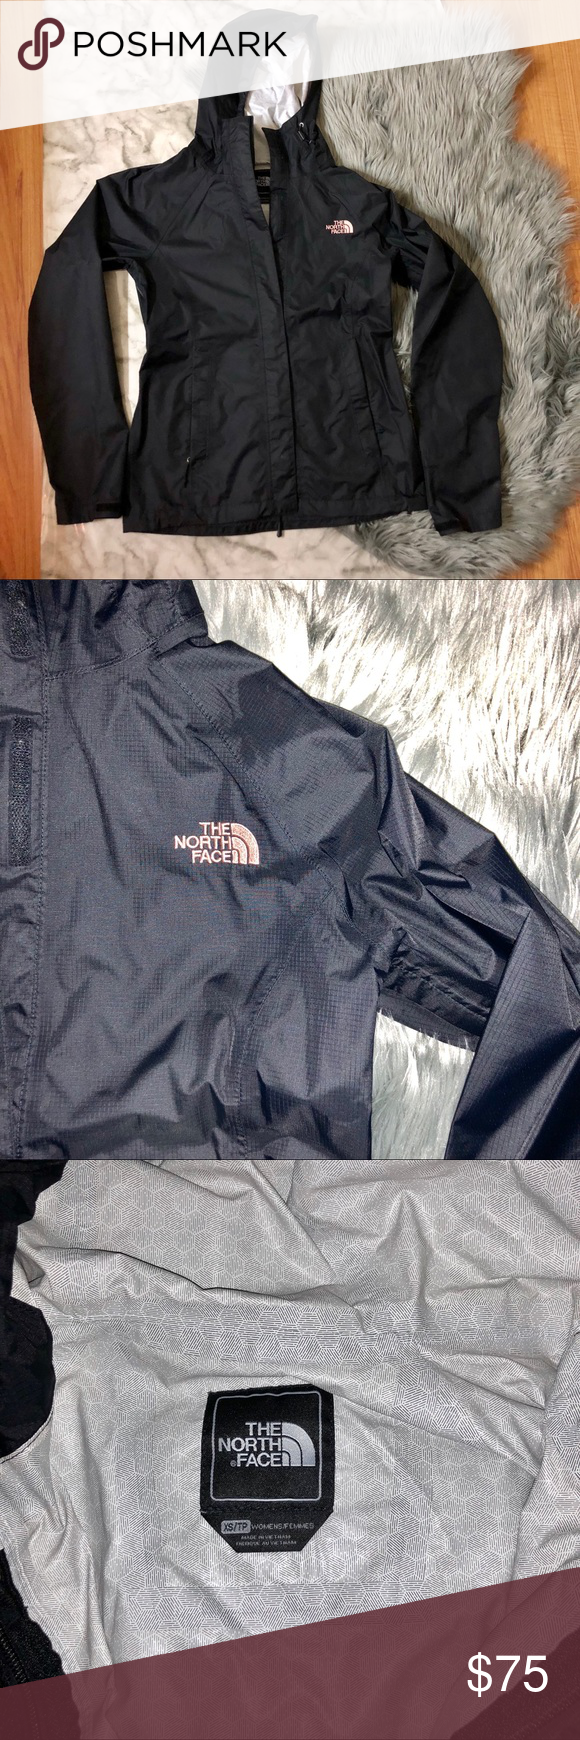 Black Rose Gold Northface Jacket Black Northface Windbreaker W Rose Gold Water Proof No Flaws Worn A Handful North Face Jacket Clothes Design Black Rose [ 1740 x 580 Pixel ]